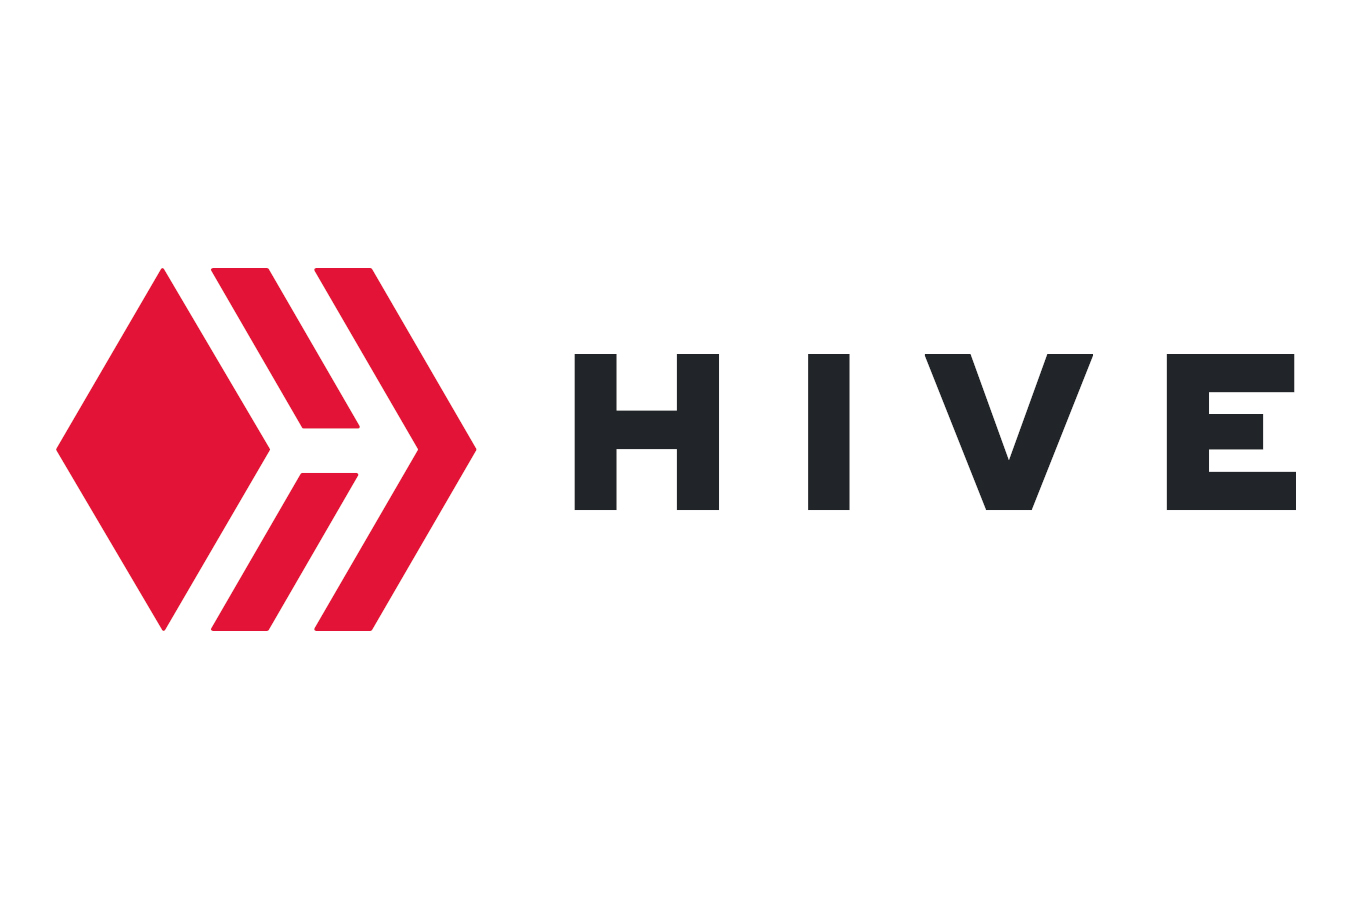 Hive Rises 600% After Huobi Listing